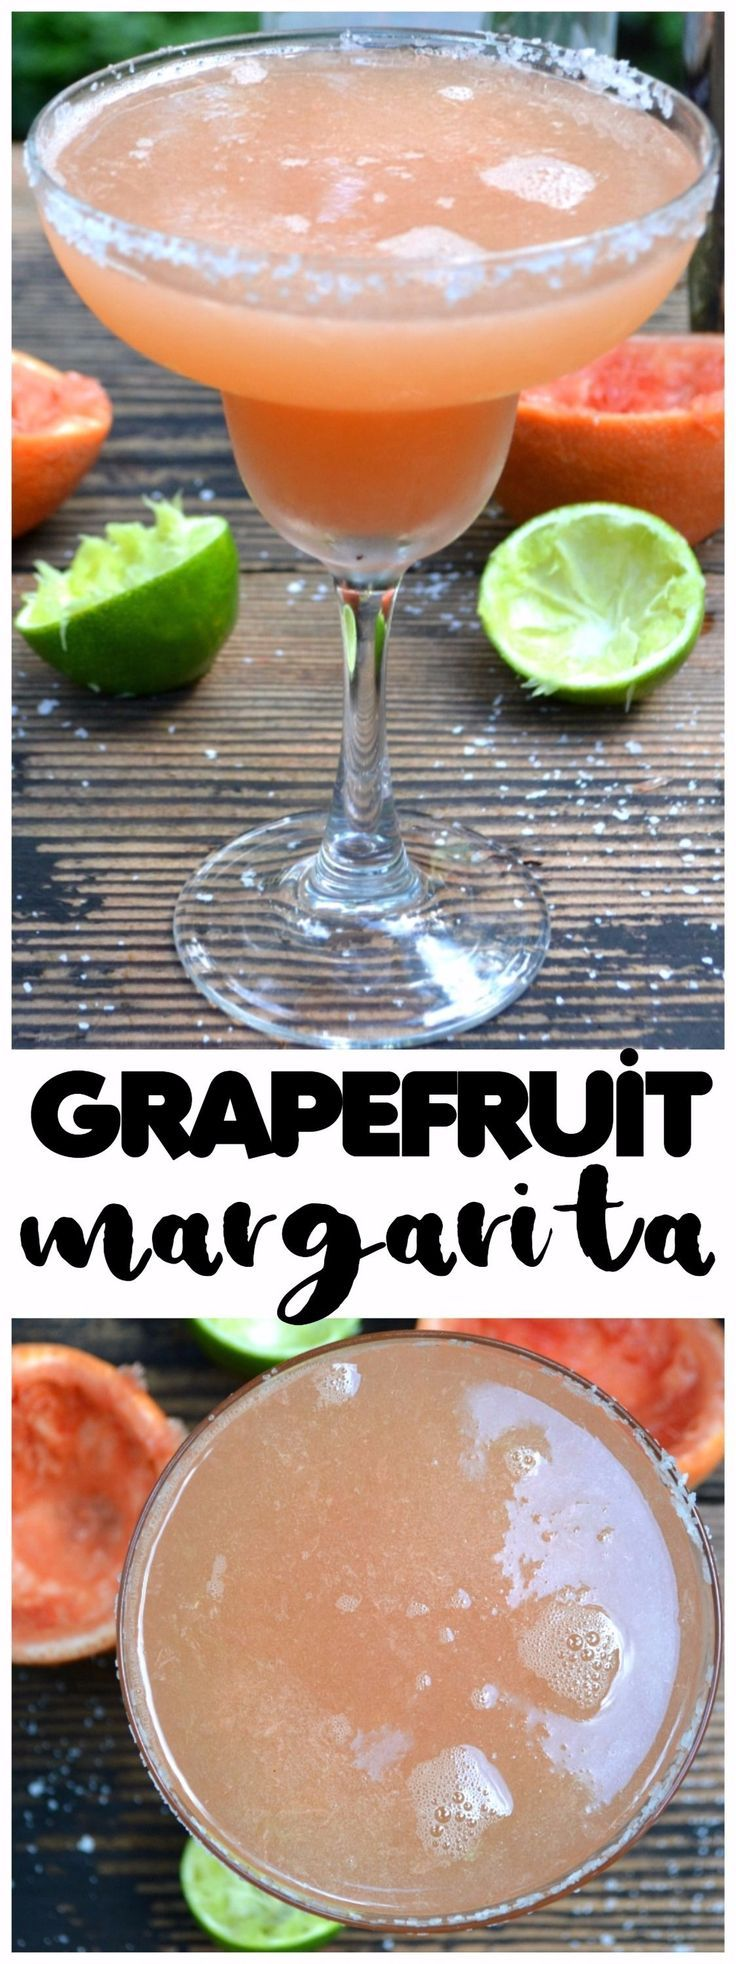 The Perfect Grapefruit Margarita.  We're going back to basics here.  A grapefruit, a lime, tequila and perhaps a drizzle of agave.  Fresh & simple ingredients are all you need for Margarita perfection | www.craftycookingmama.com